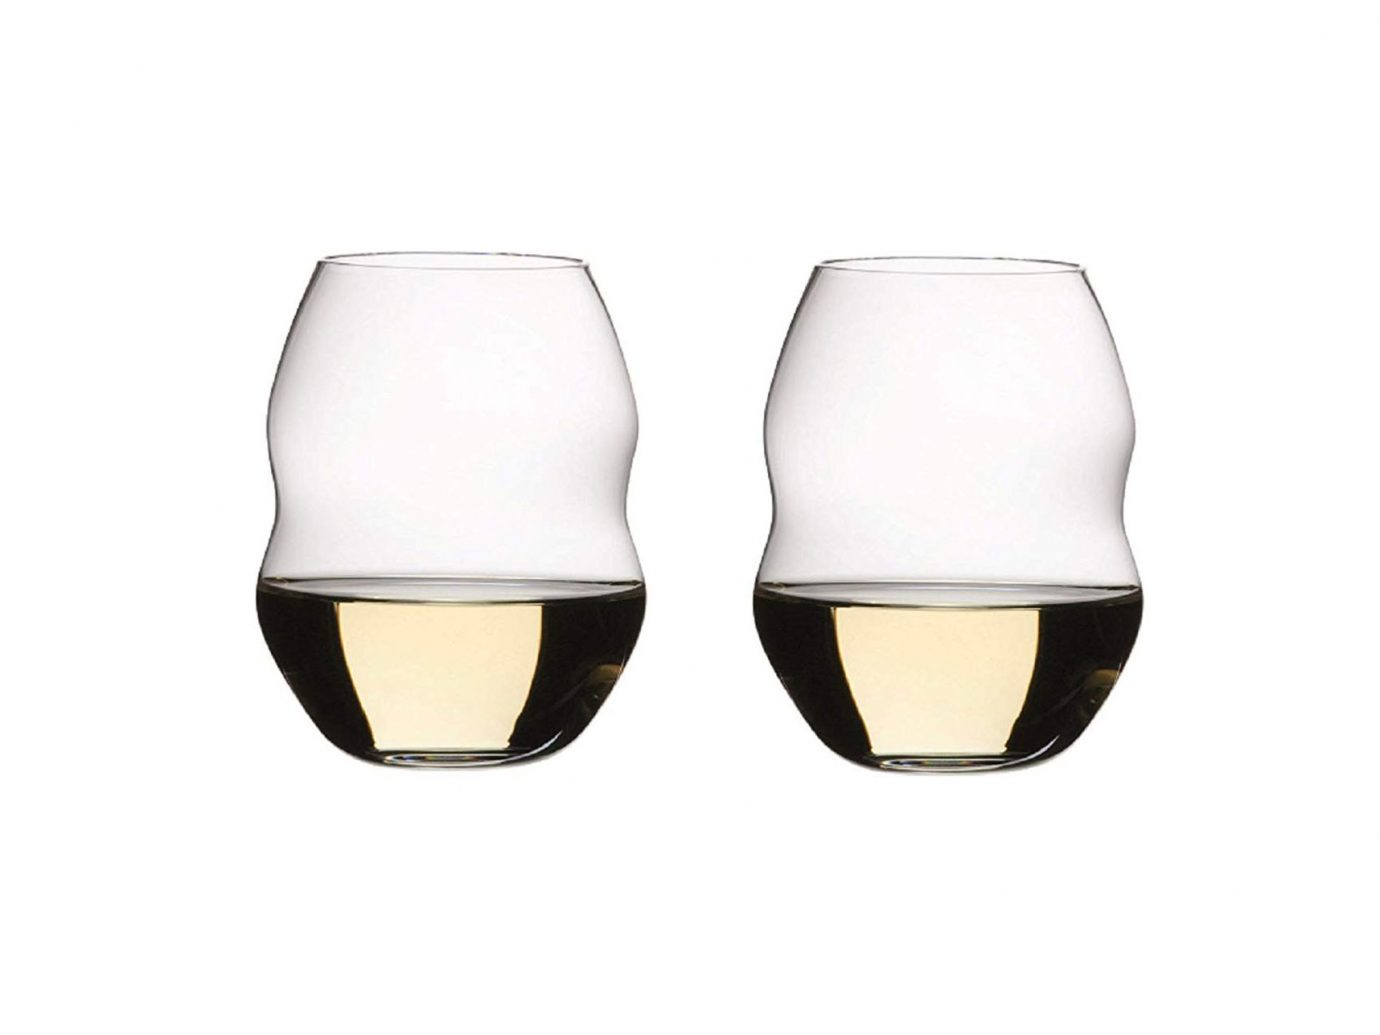 Buy Riedel Swirl White Wine Glasses on Amazon